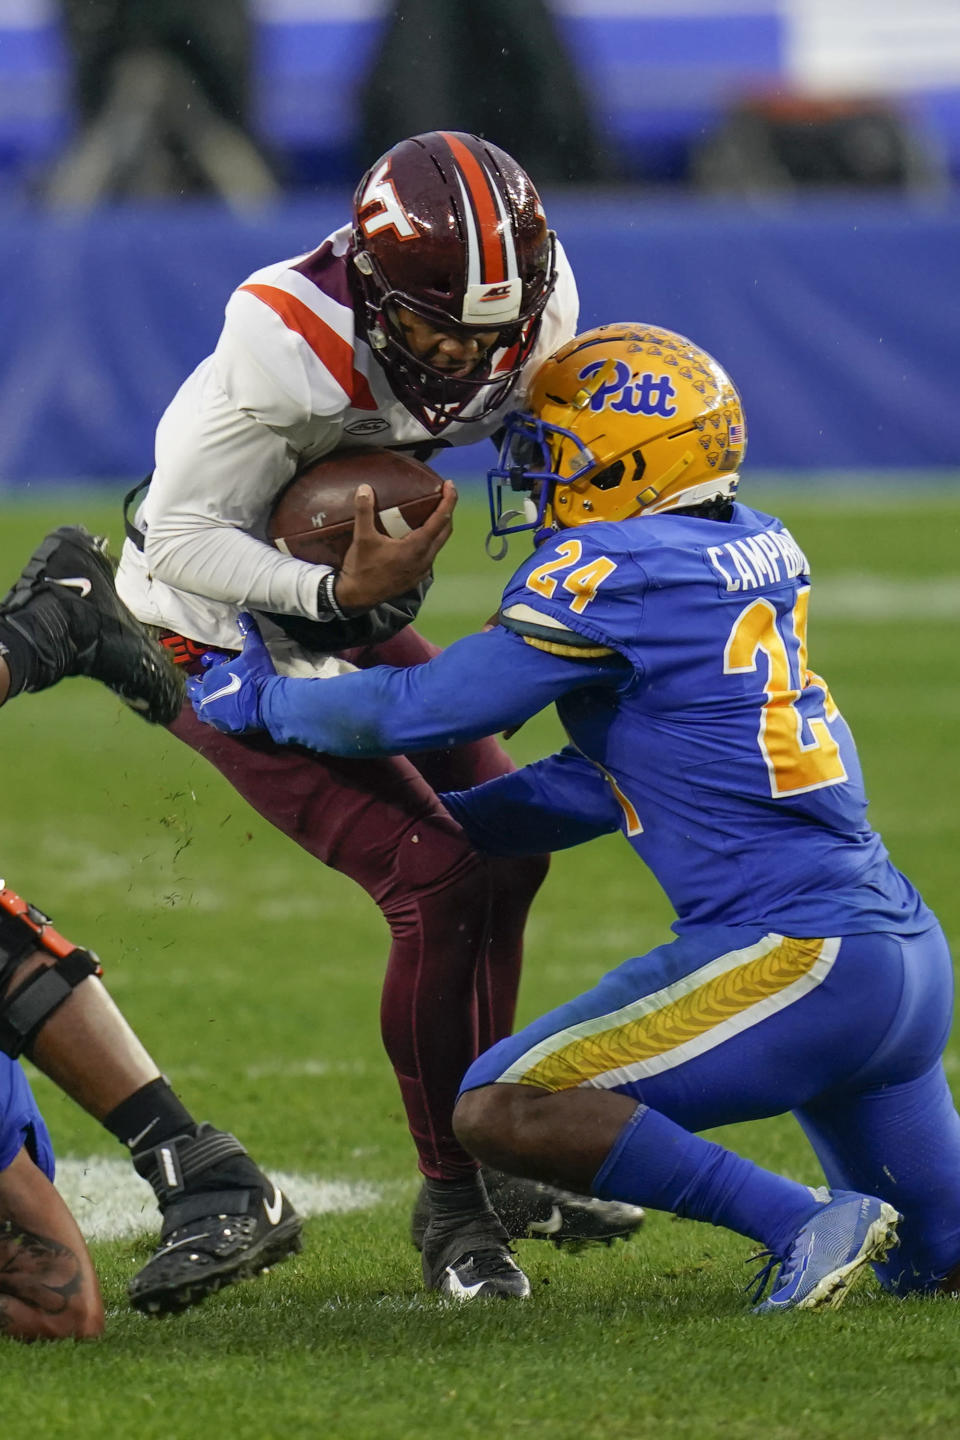 Pittsburgh linebacker Phil Campbell III (24) tackles Virginia Tech quarterback Hendon Hooker (2) on a run during the first half of an NCAA college football game, Saturday, Nov. 21, 2020, in Pittsburgh. (AP Photo/Keith Srakocic)